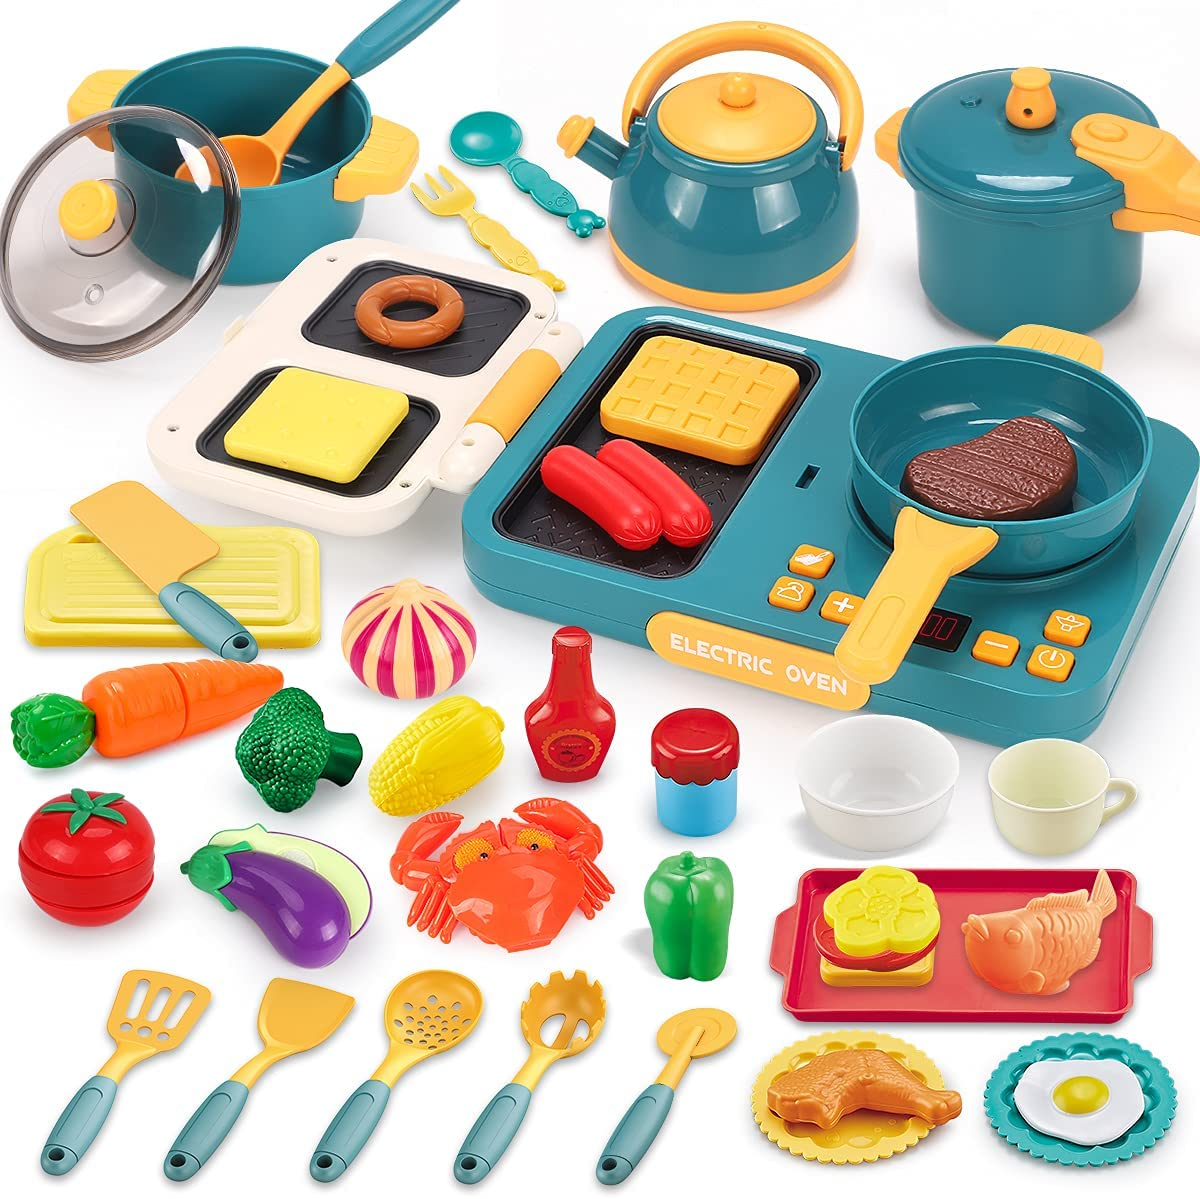 KaeKid Kids Kitchen Pretend Play Toys Cookware Playset, Kitchen Accessories Cooking Pots and Pans Electronic Induction Cooktop Set, Cutting Play Food Dishes Utensils for Toddlers Boys Girls